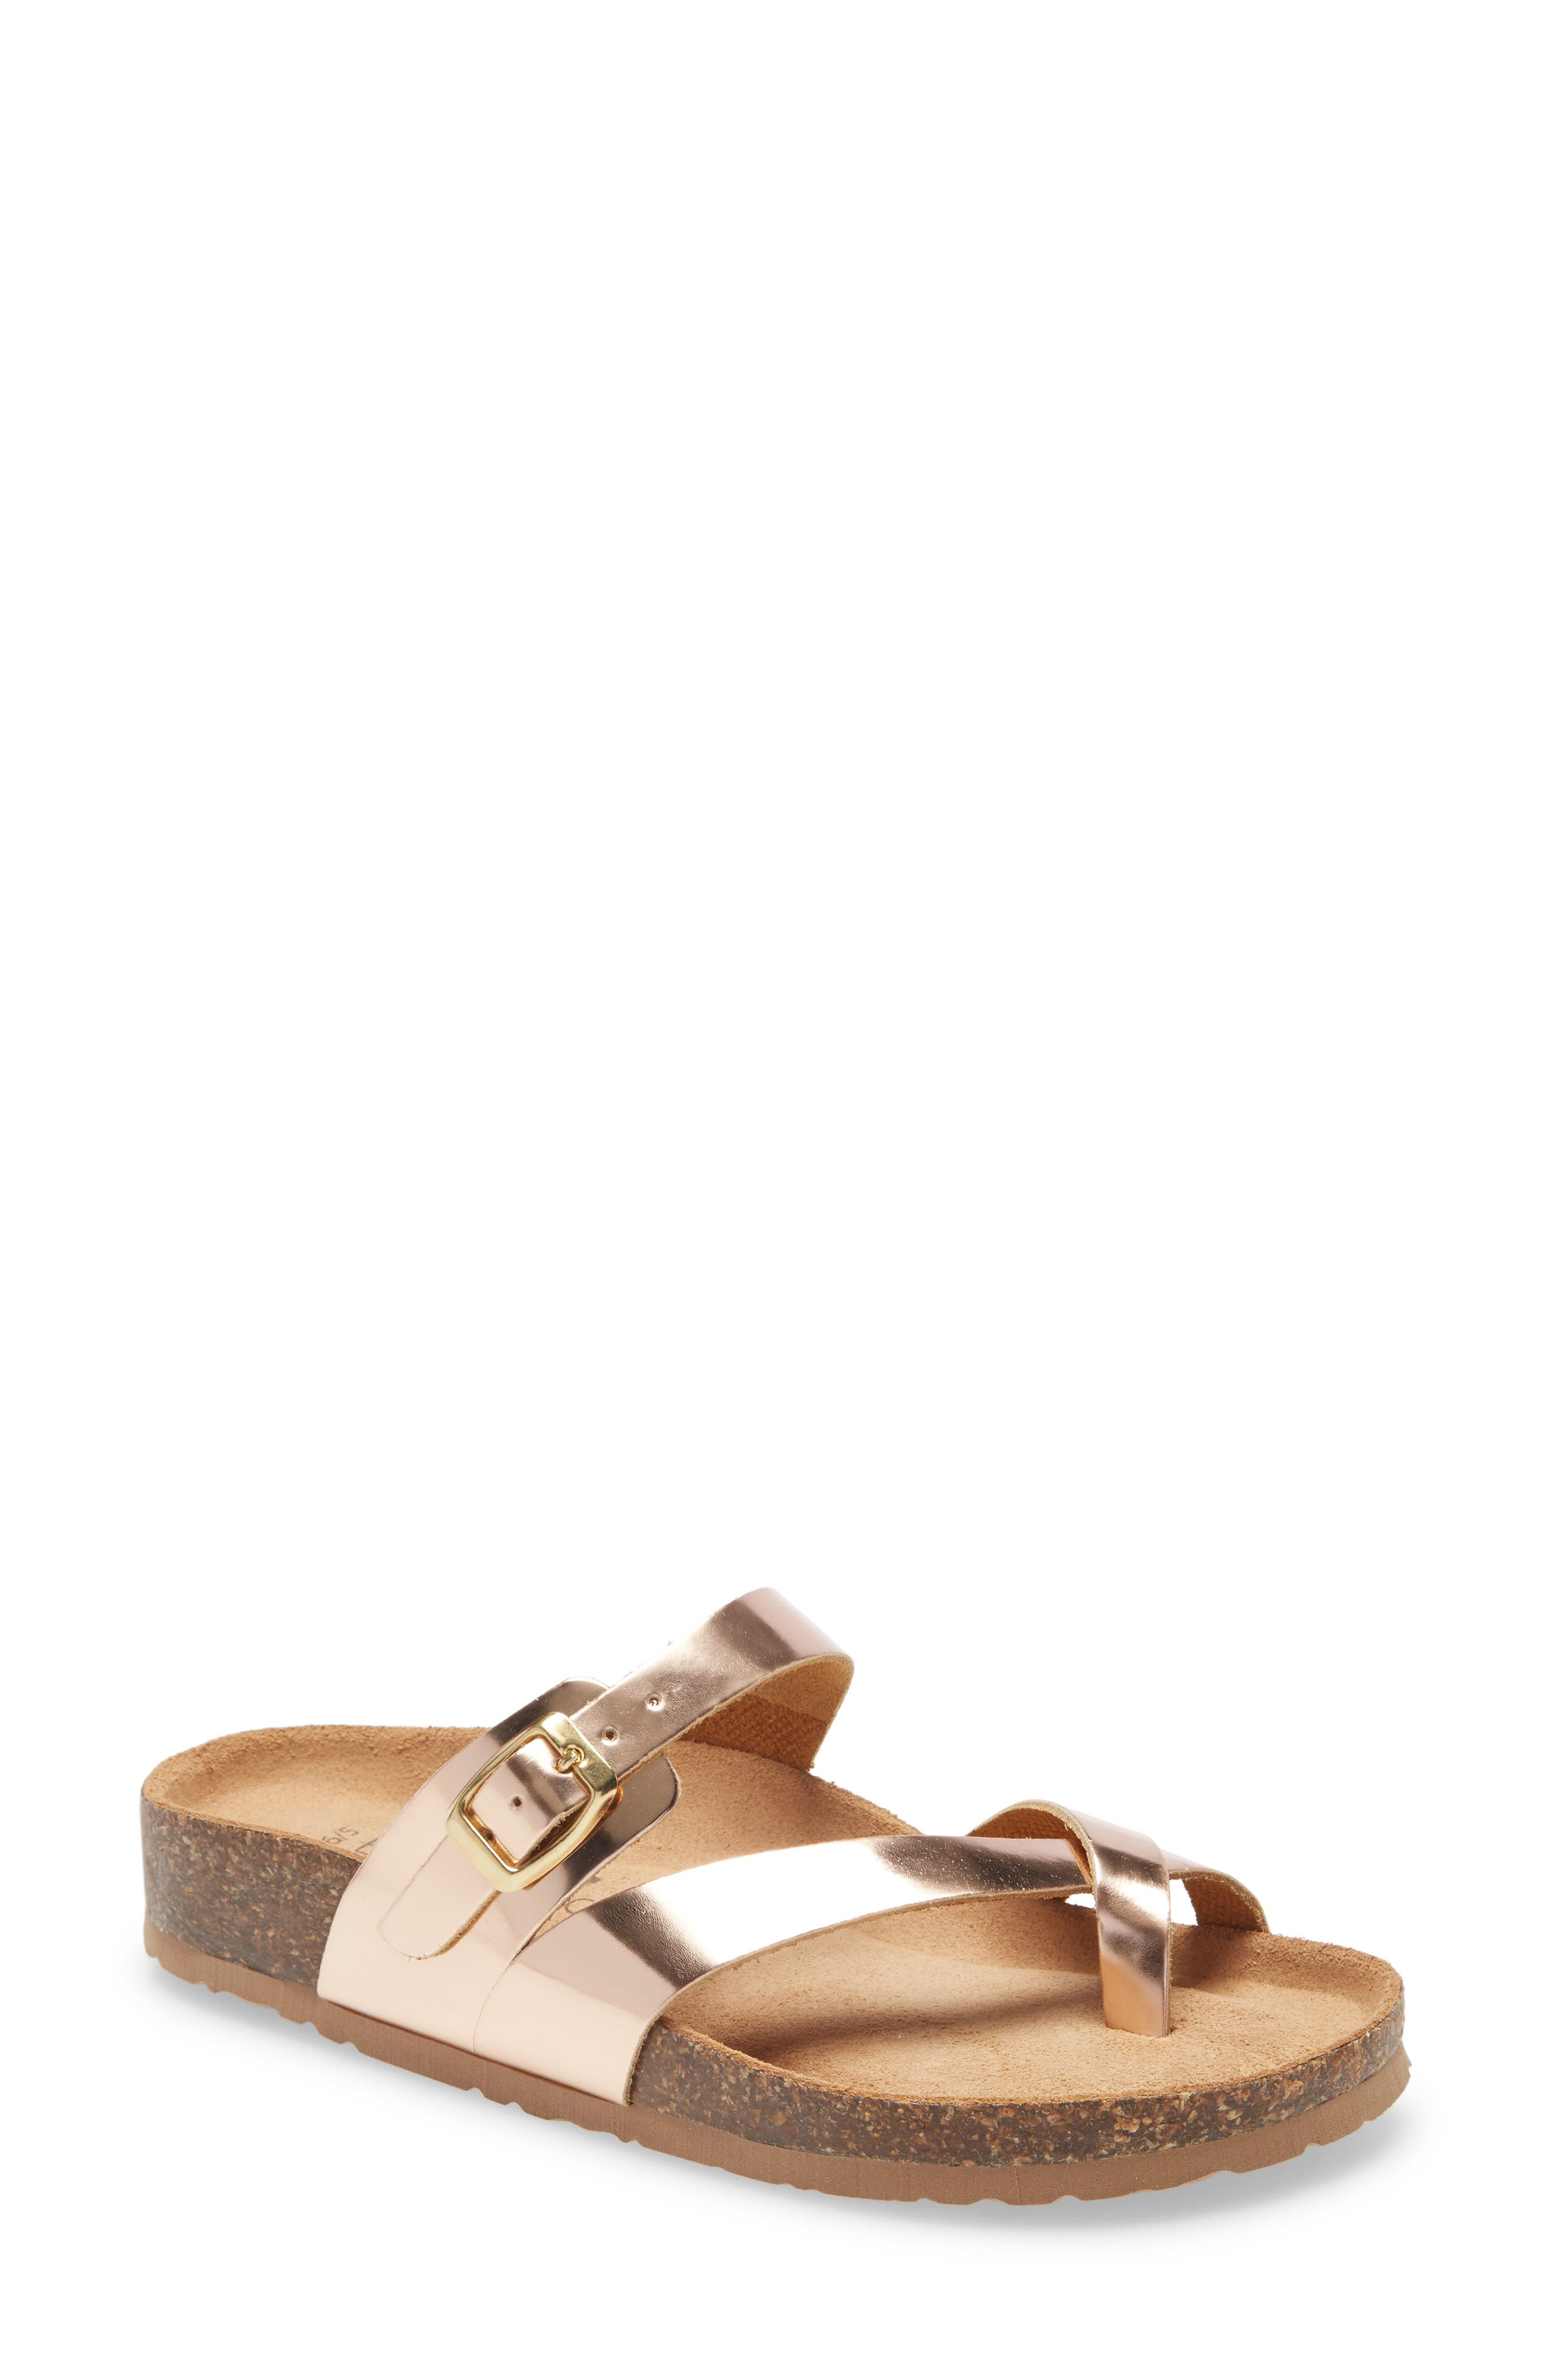 Strappy styling details a comfort-focused sandal grounded by a contoured cork footbed. Style Name: Bos. & Co. Parr Sandal (Women). Style Number: 6002122. Available in stores.